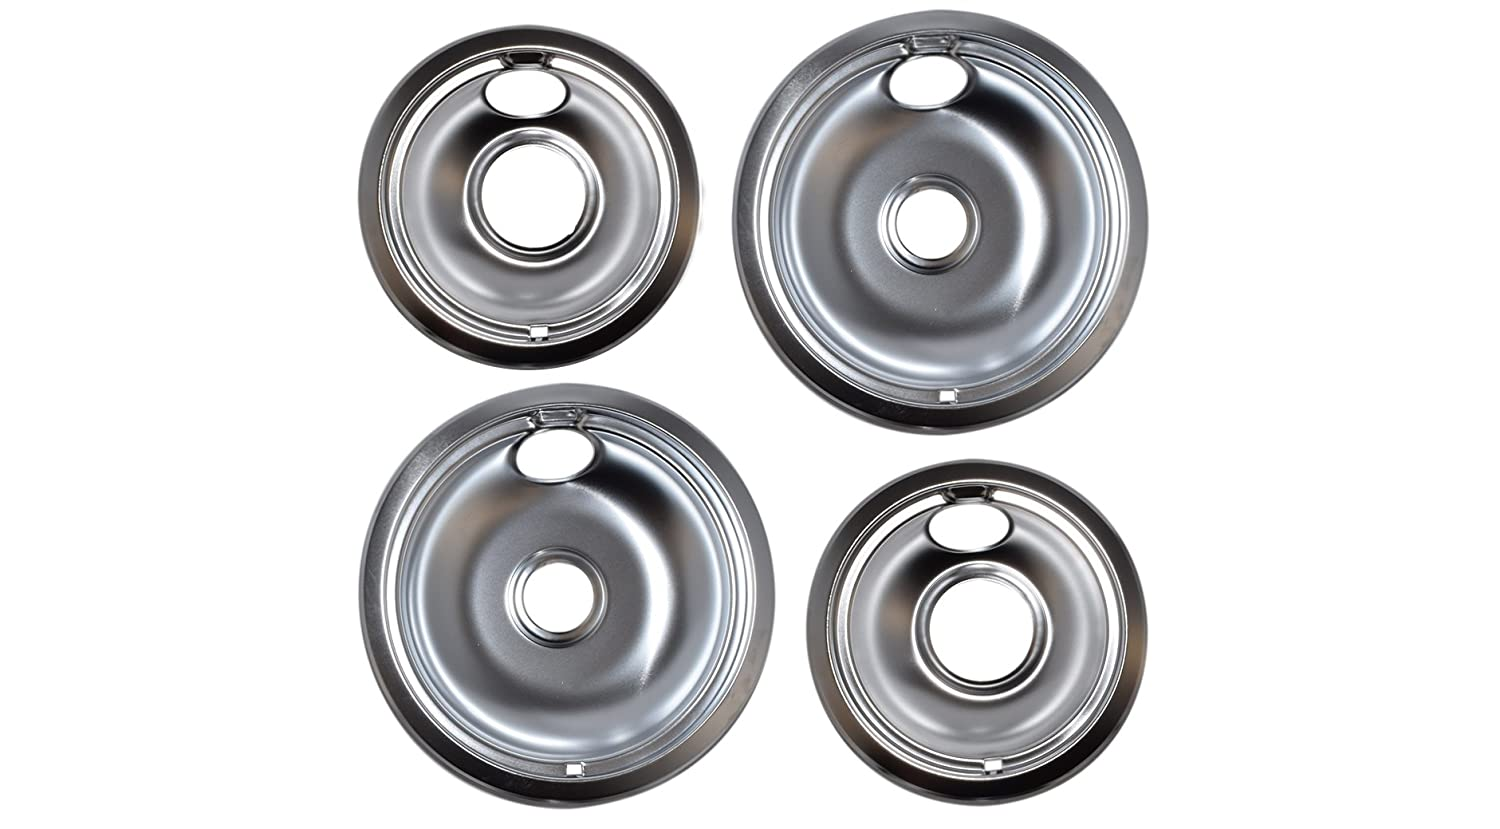 "Vastu Aftermarket Replacement Drip Pans for Whirlpool Range - 2 Large 8"" and 2 Small 6"" Drip Bowl Pans - Set of 4 - x2 of W10196405 - x2 of W10196406"